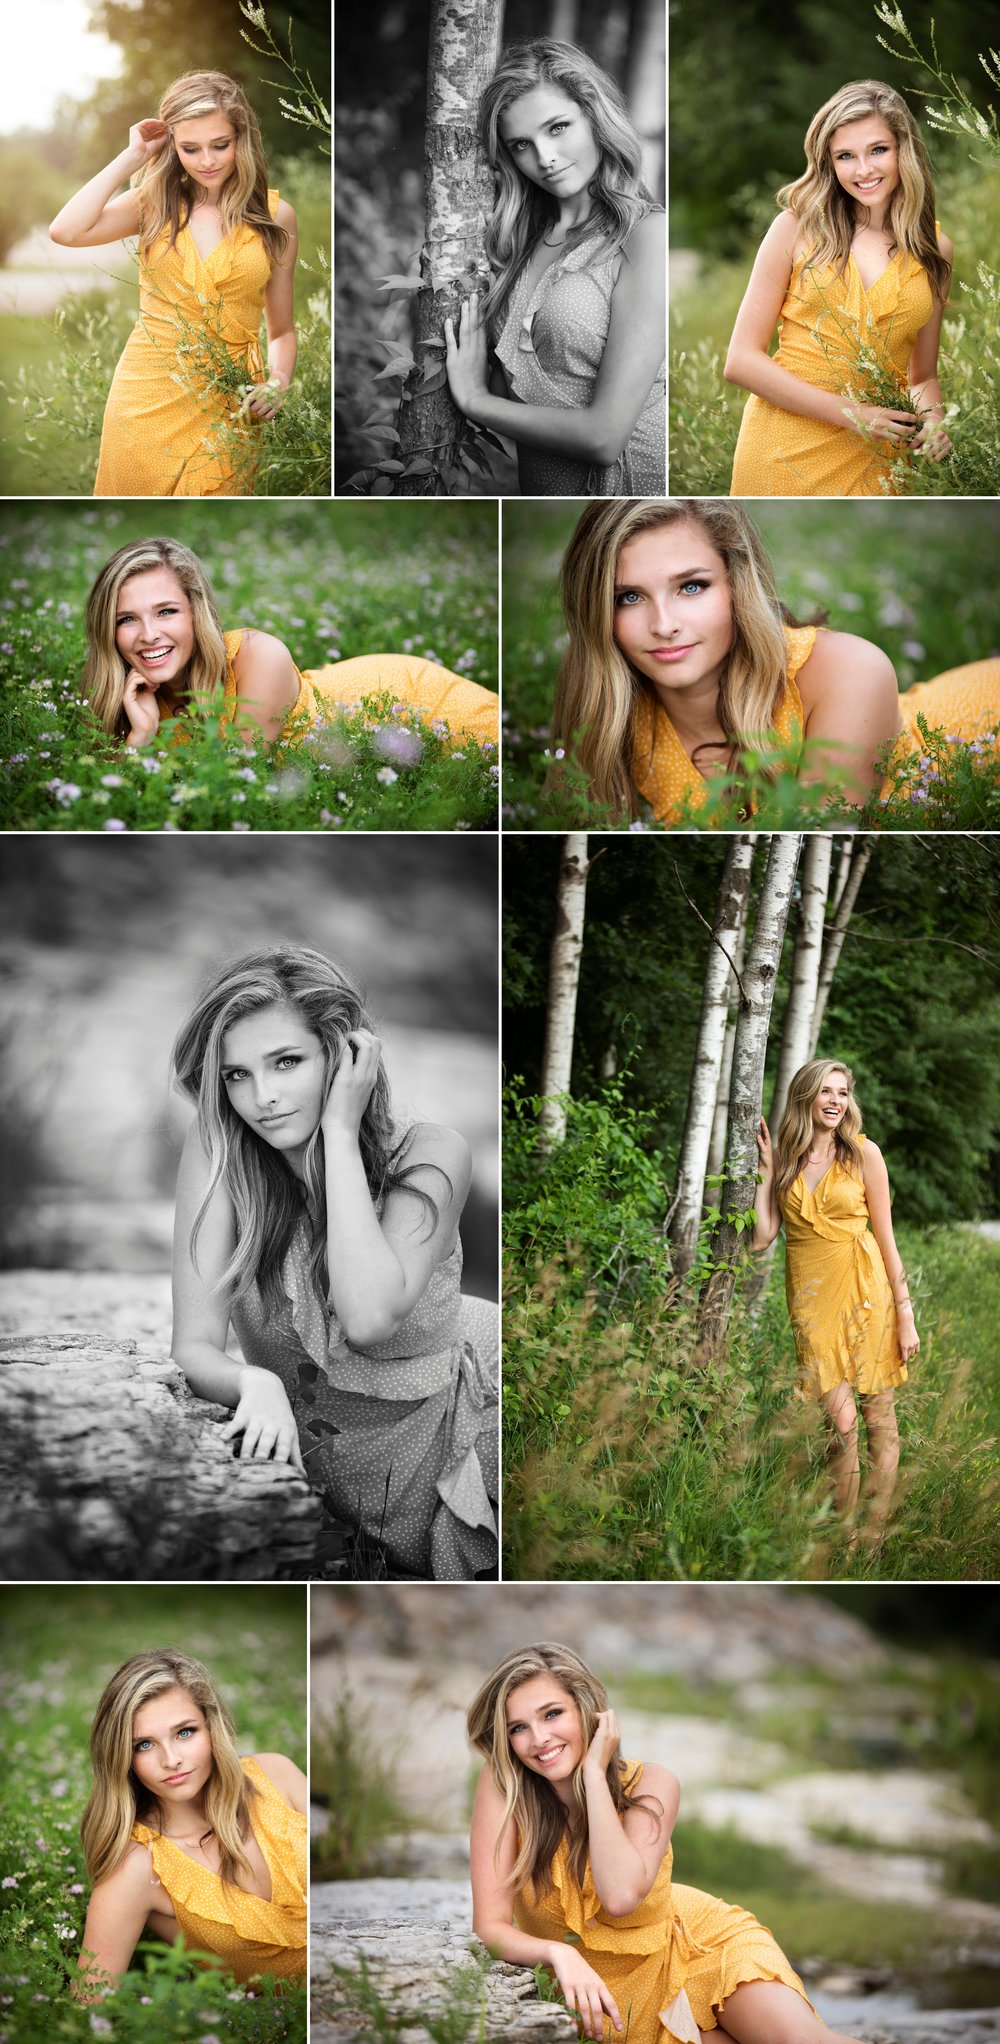 Iowa-City-Senior-Pictures-006.jpg